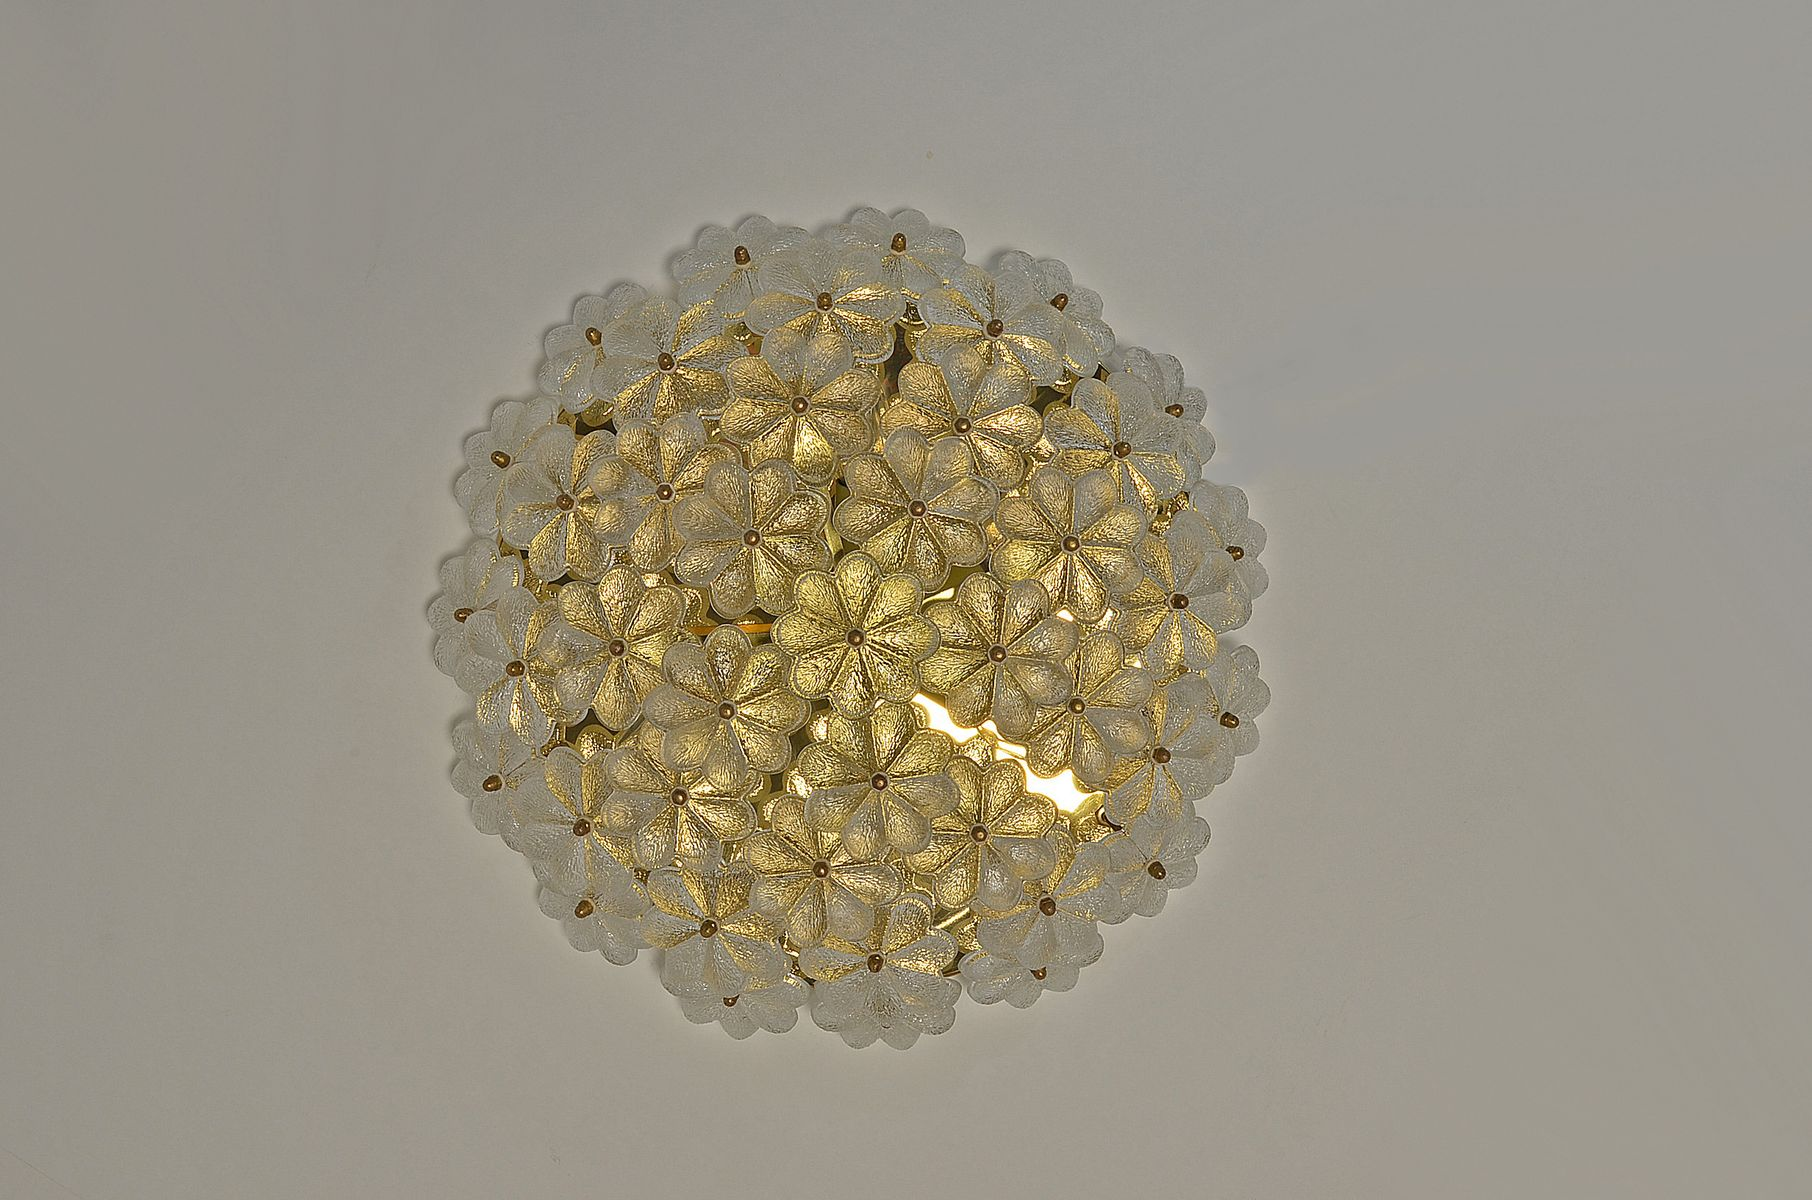 Vintage Large Murano Glass Floral Ceiling or Wall Light by Ernst Palme for sale at Pamono